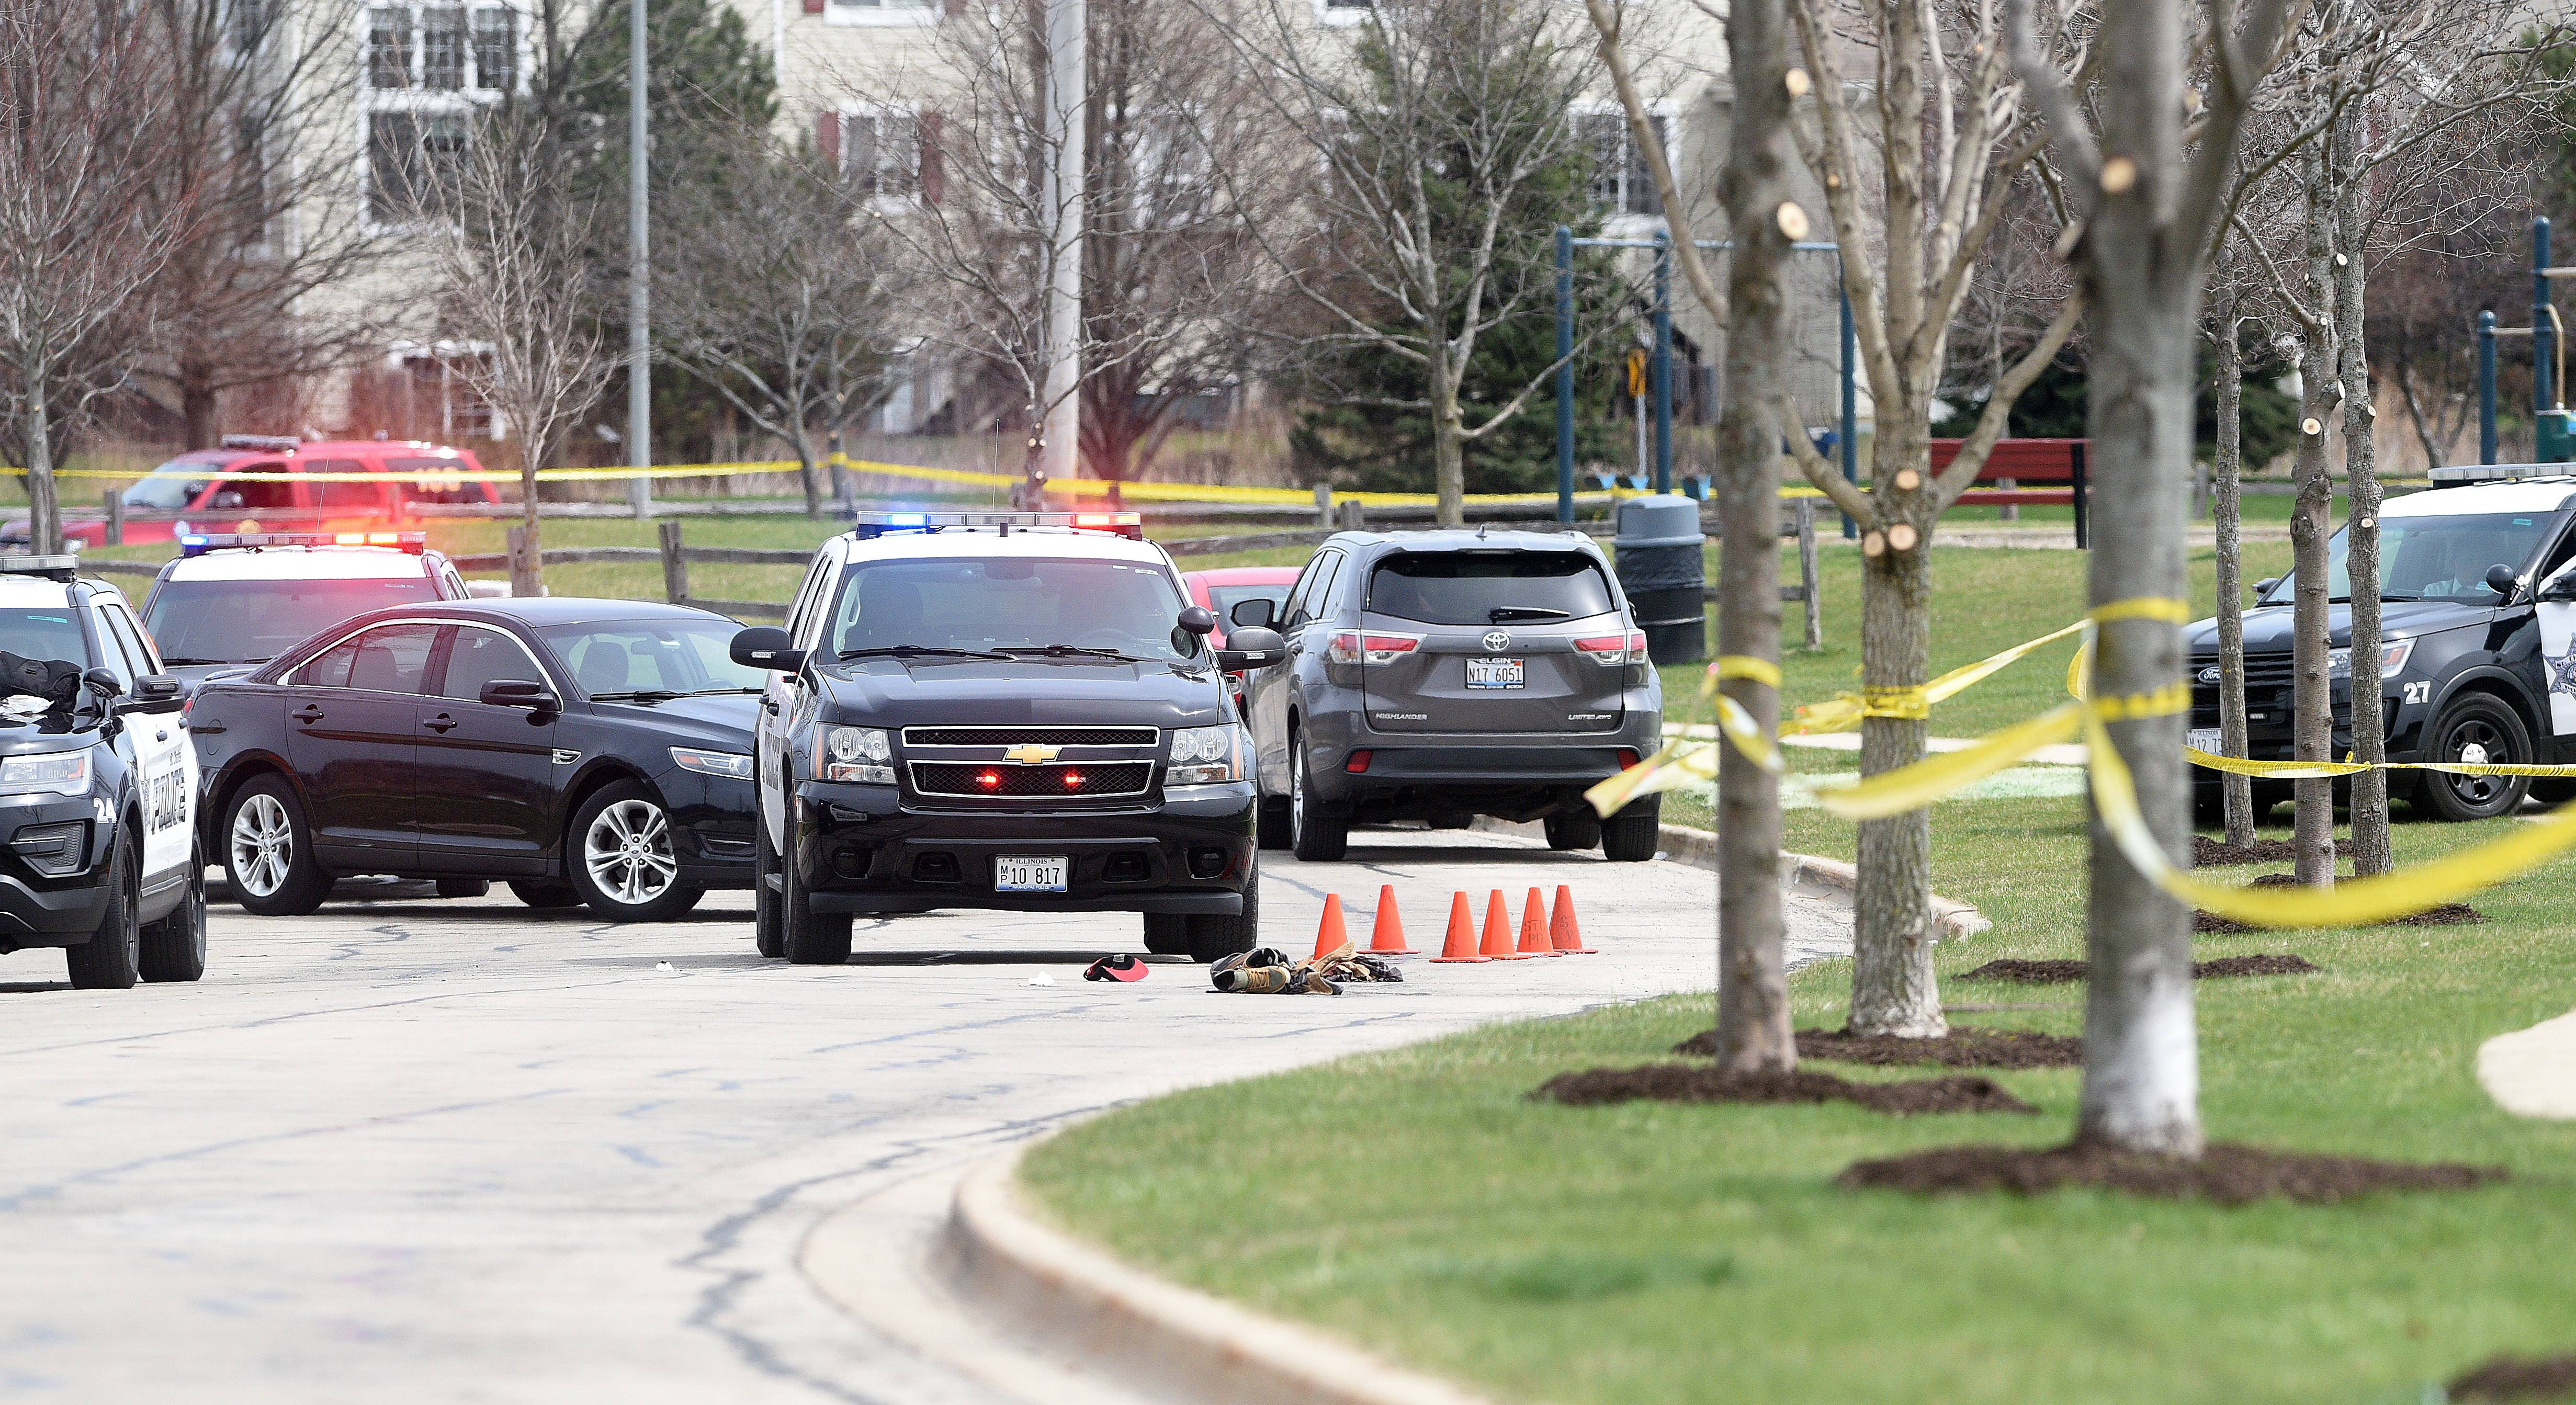 St. Charles police shot and injured a man armed with a handgun Thursday in St. Charles, authorities said.